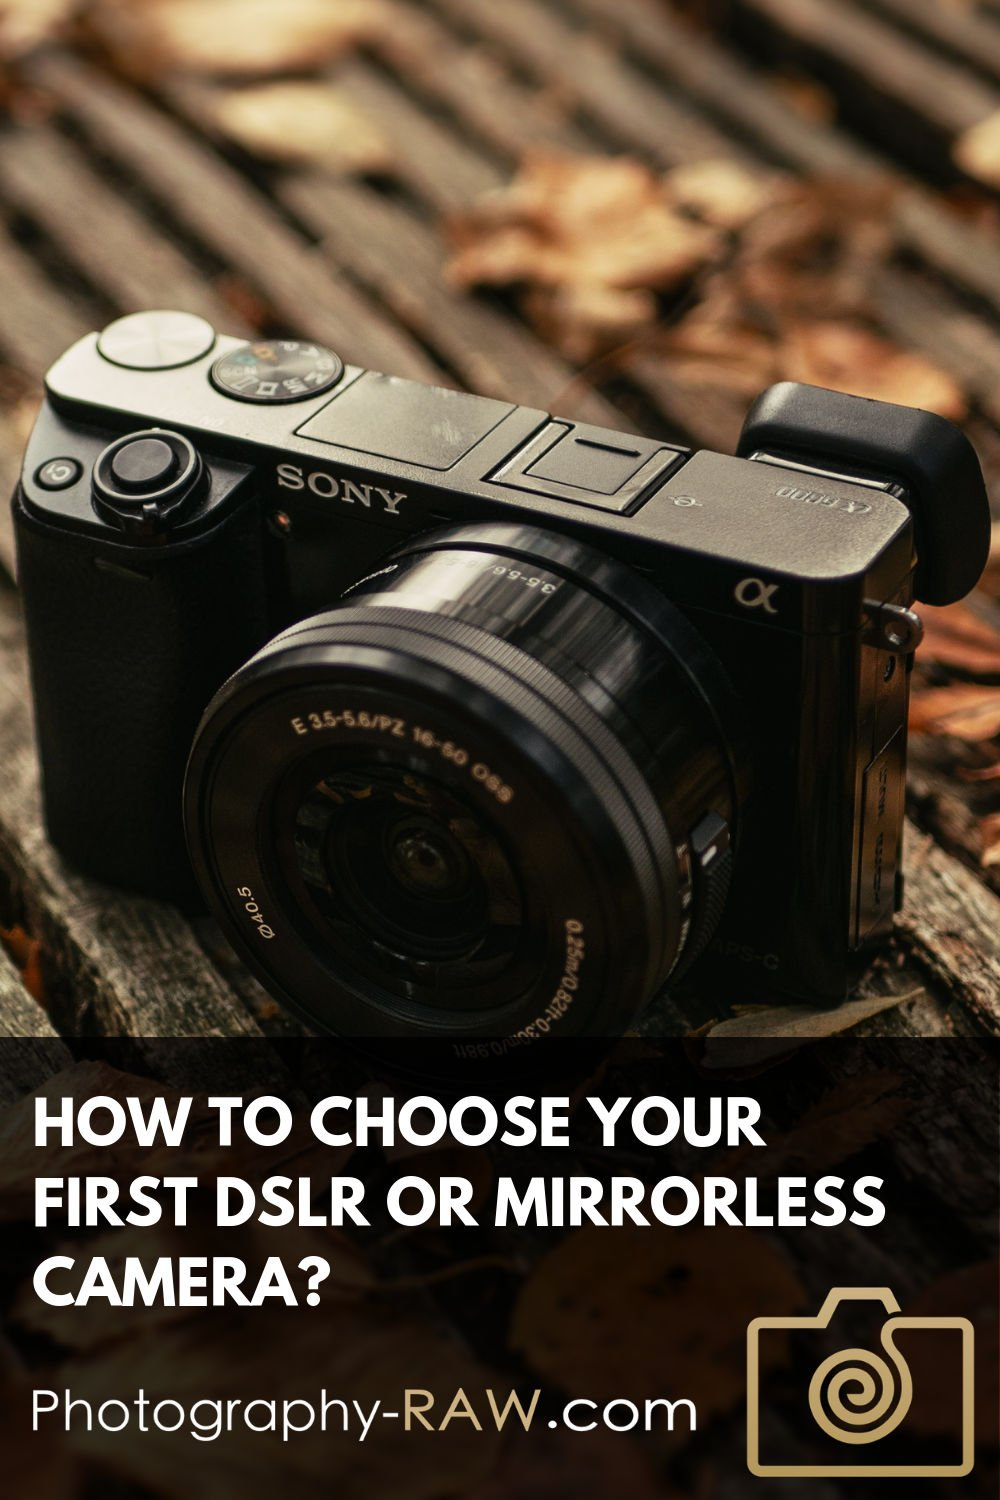 How to Choose Your First DSLR or Mirrorless Camera?